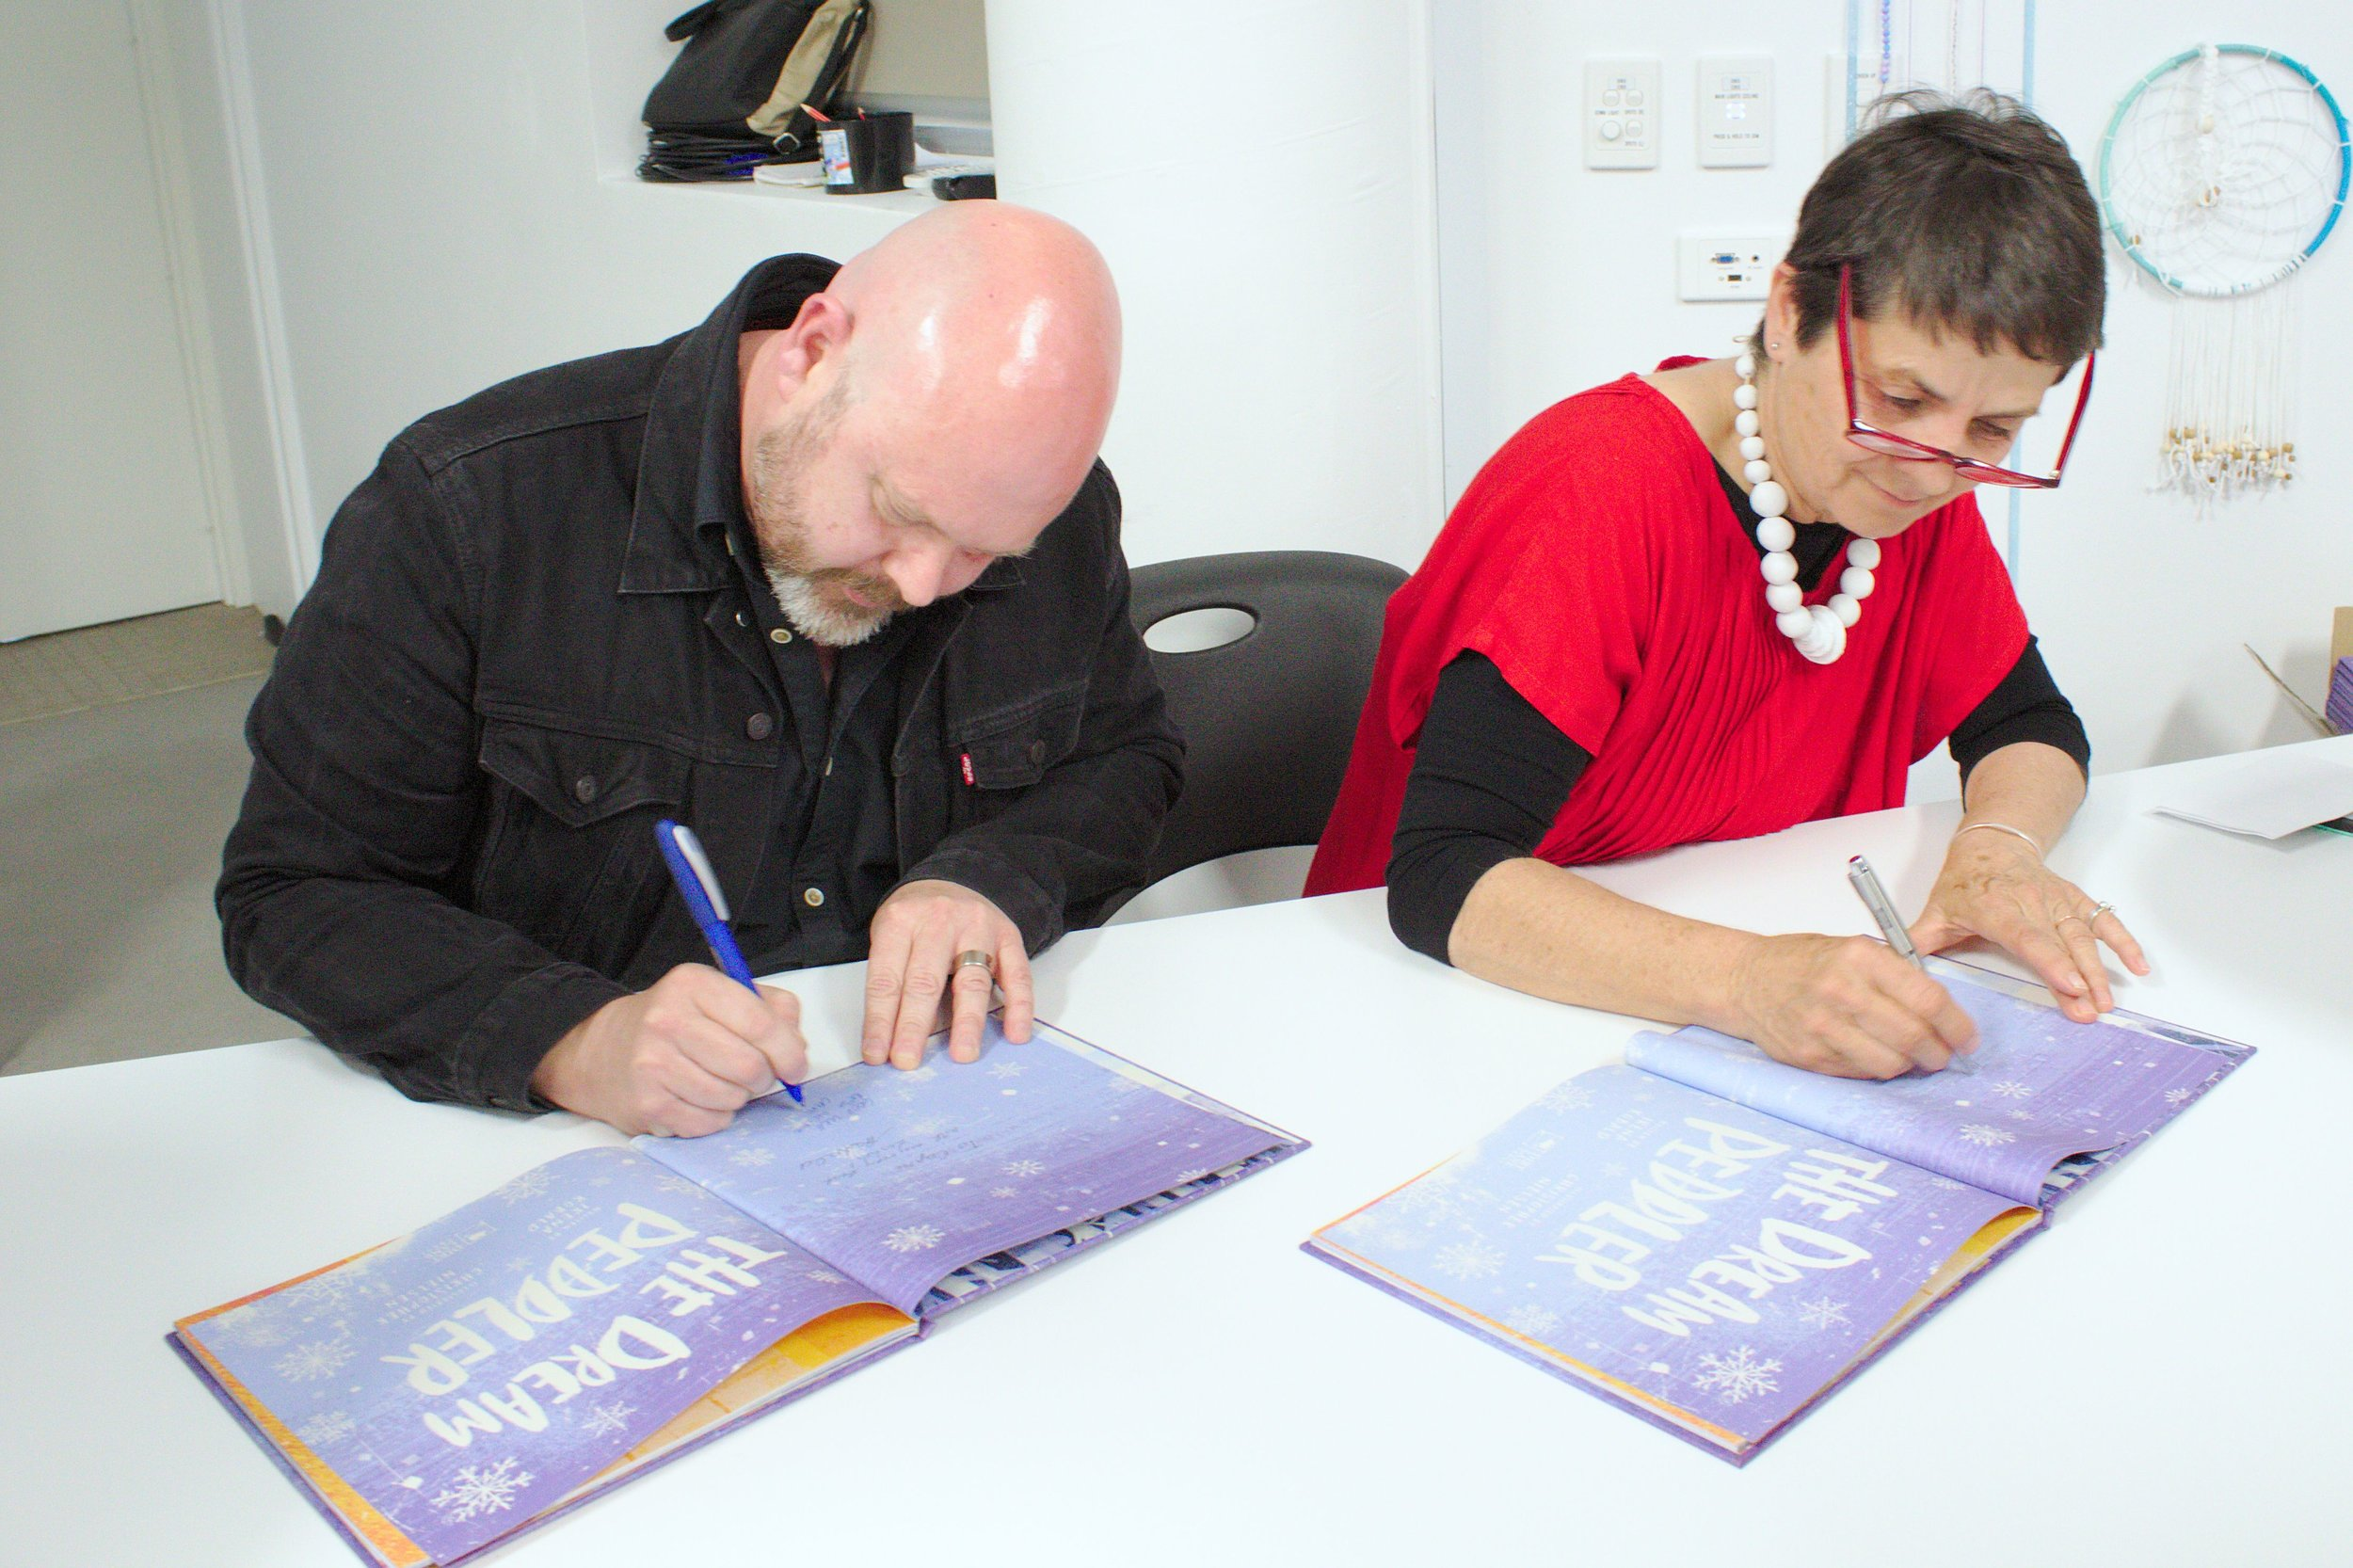 Chris and irena signing books like crazy …